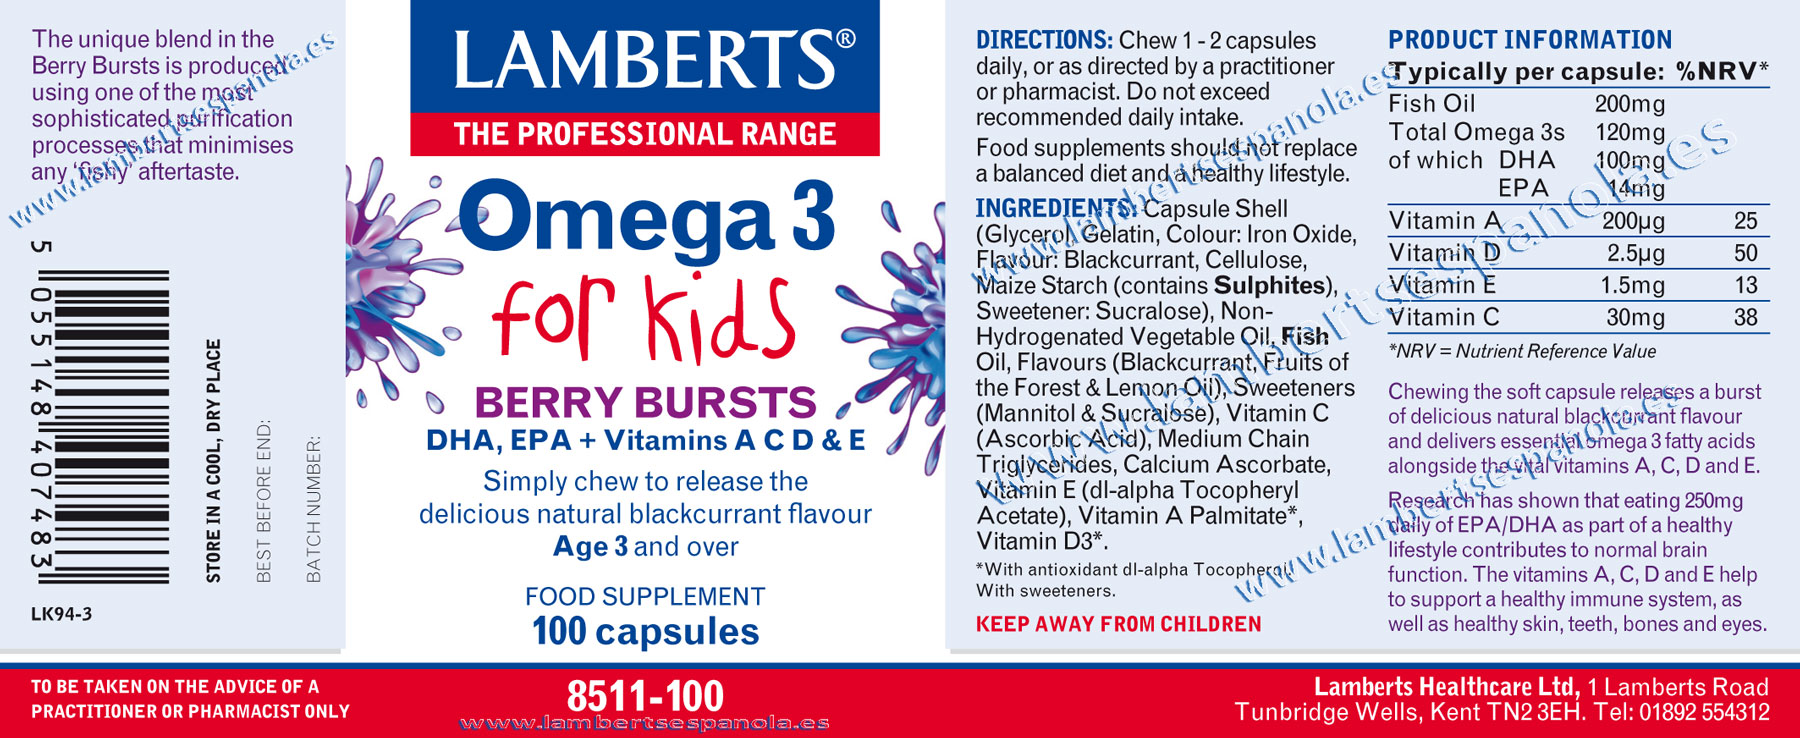 Omega 3 for kids properties